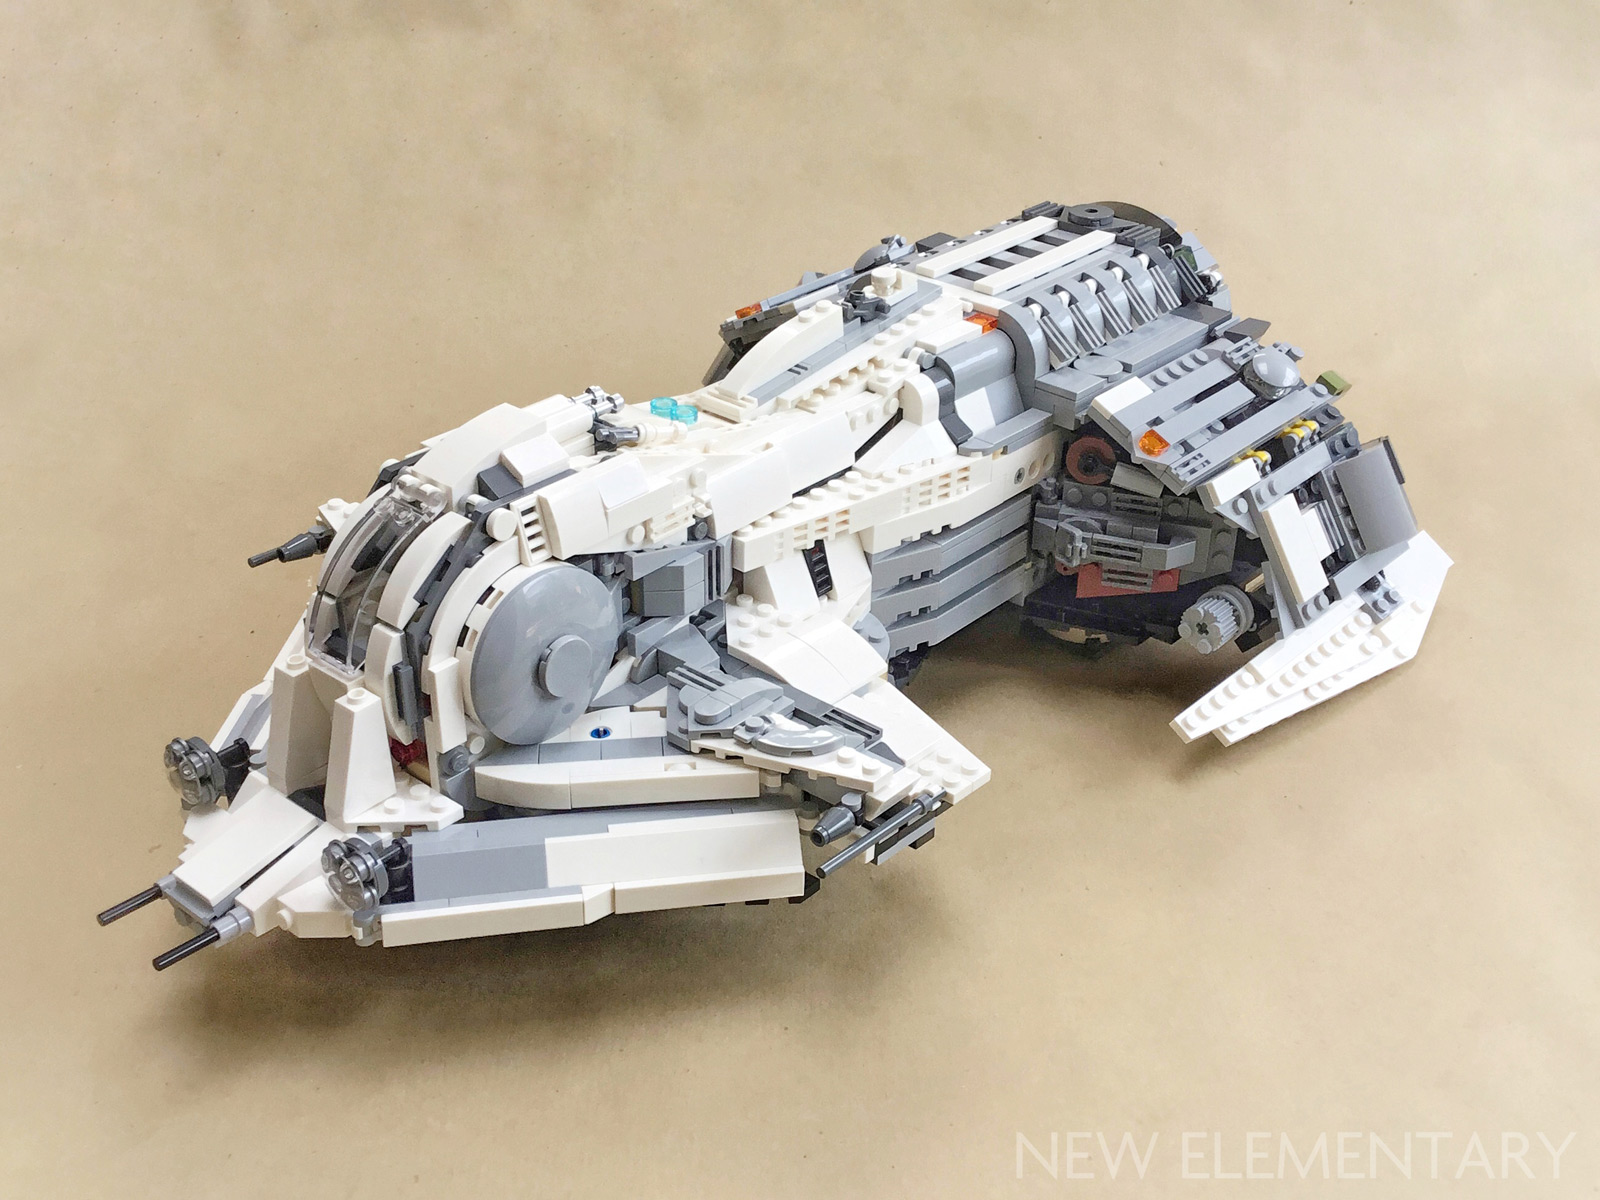 Alt Star Wars: Kev Levell's mothership and fighter   New Elementary